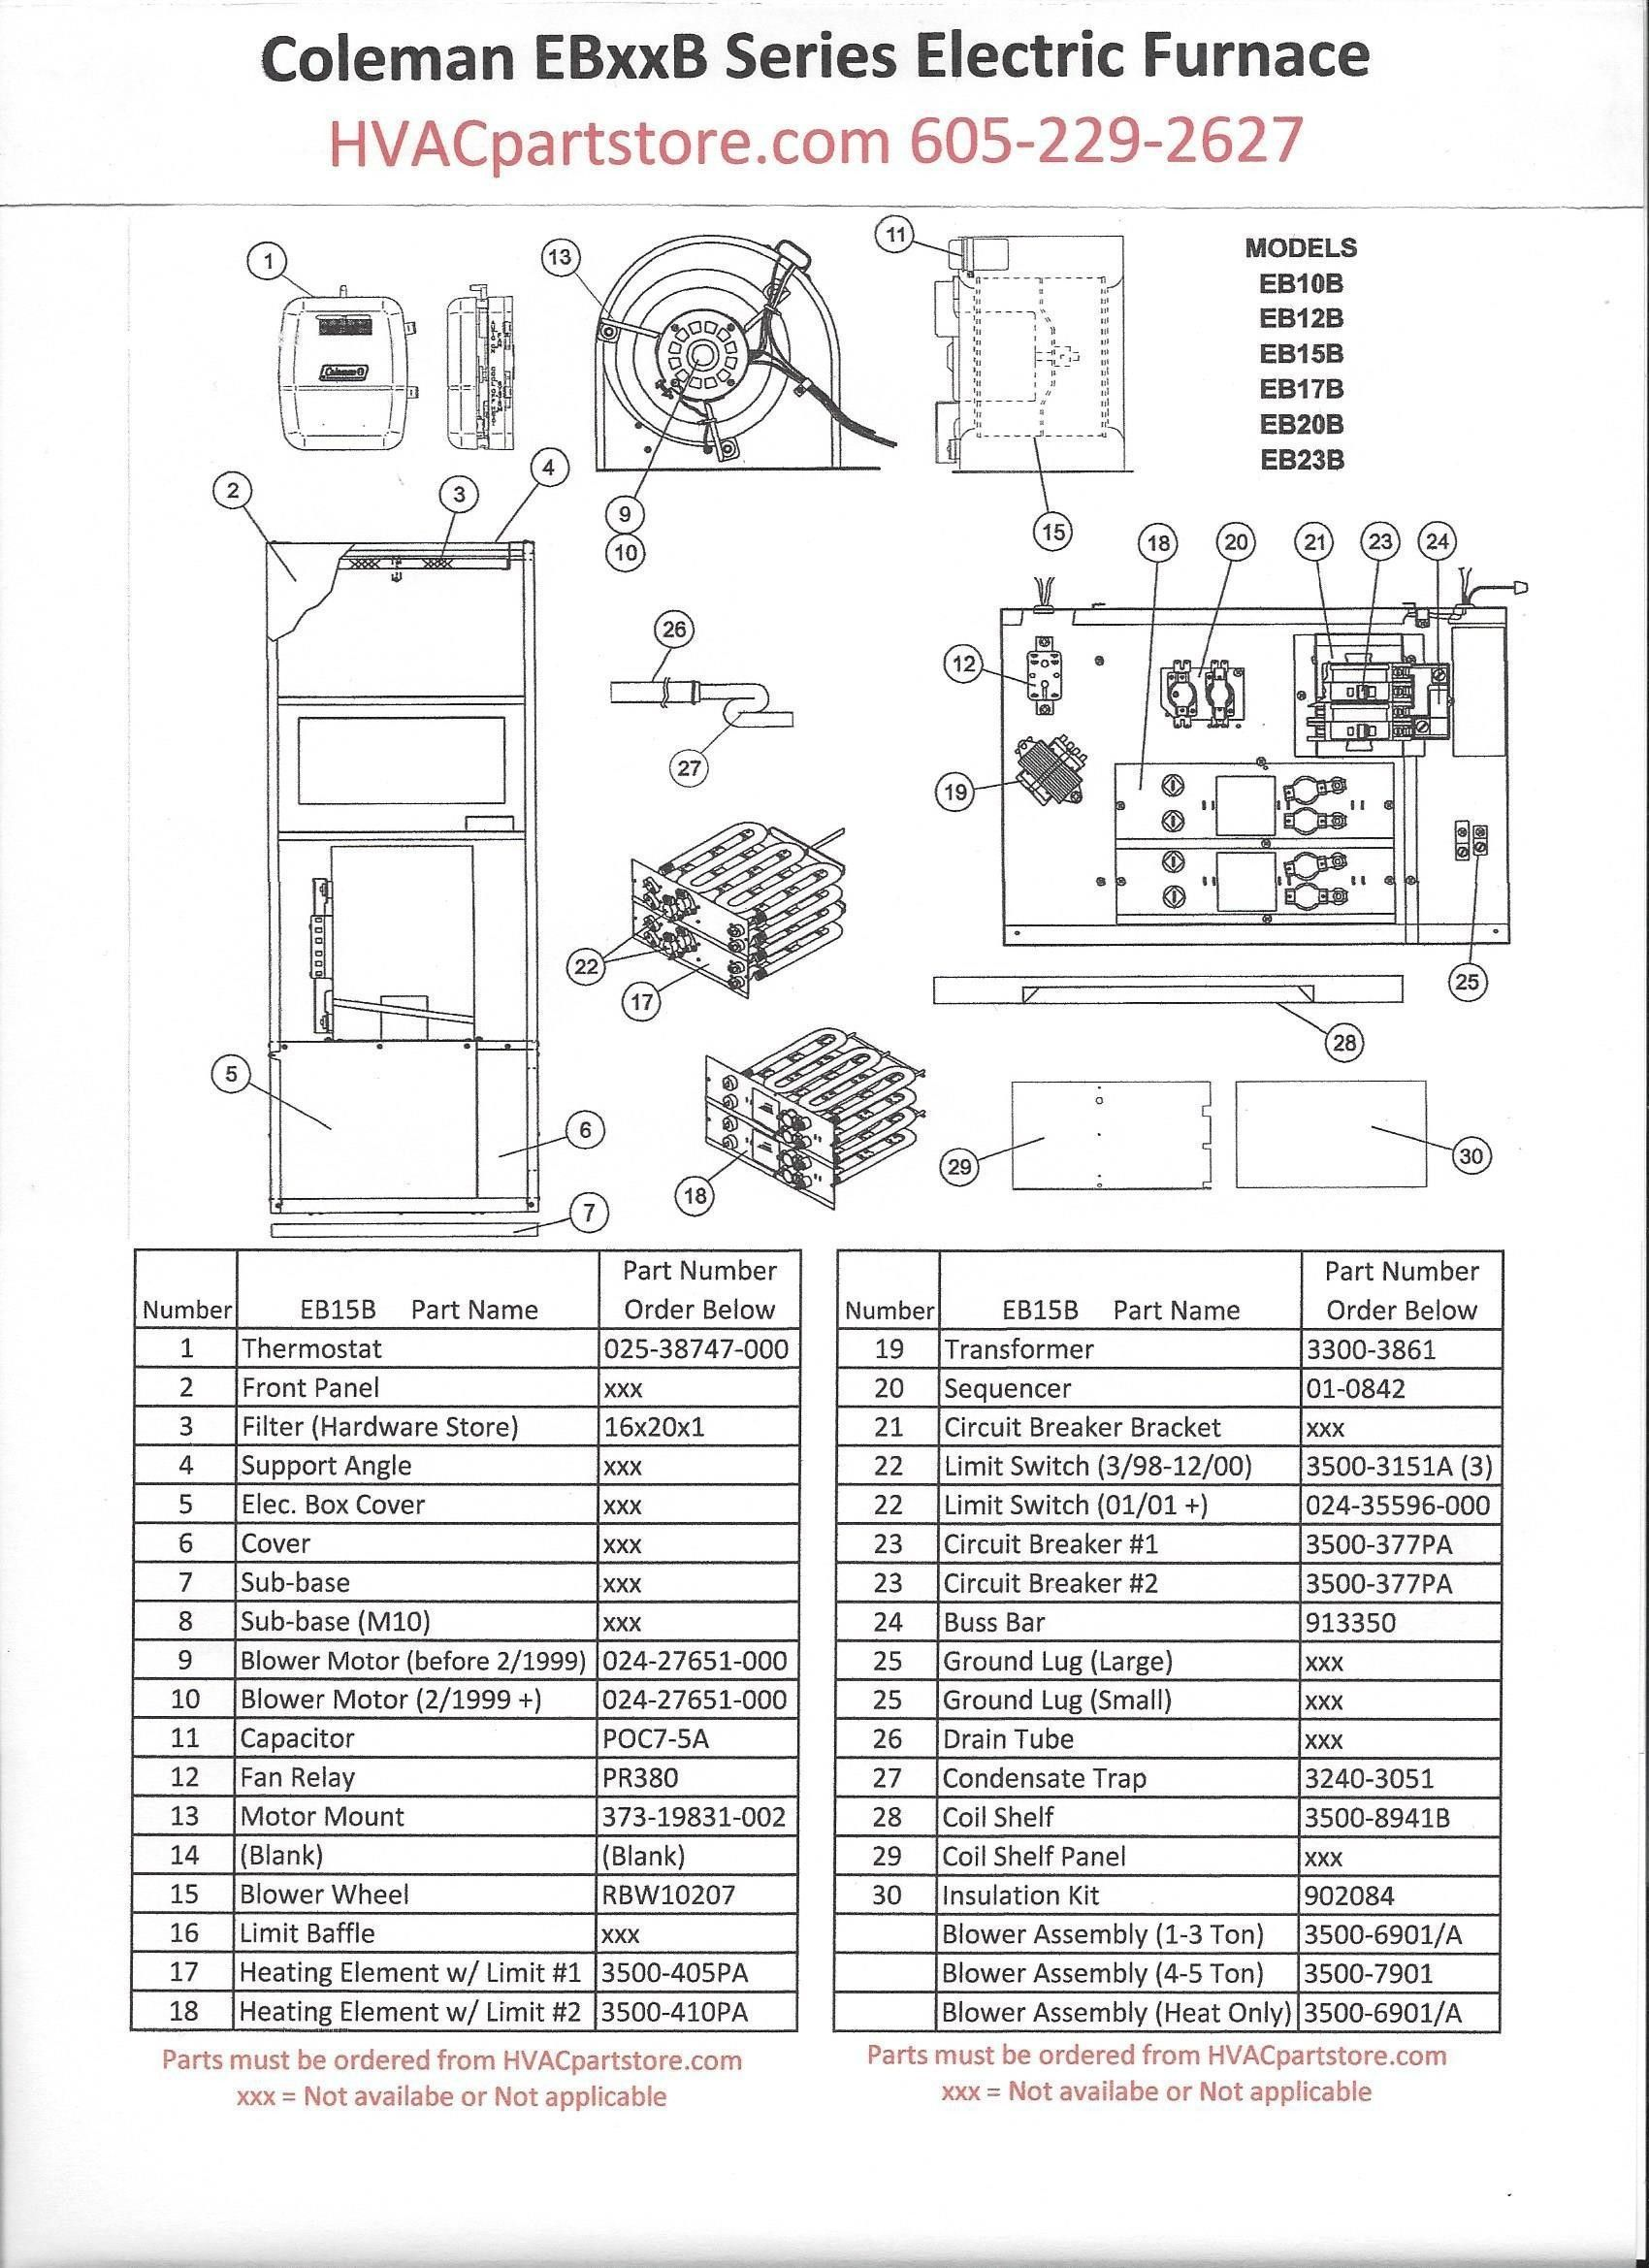 New Coleman Furnace Wiring Diagram In 2020 Electric Furnace Furnace Gas Furnace